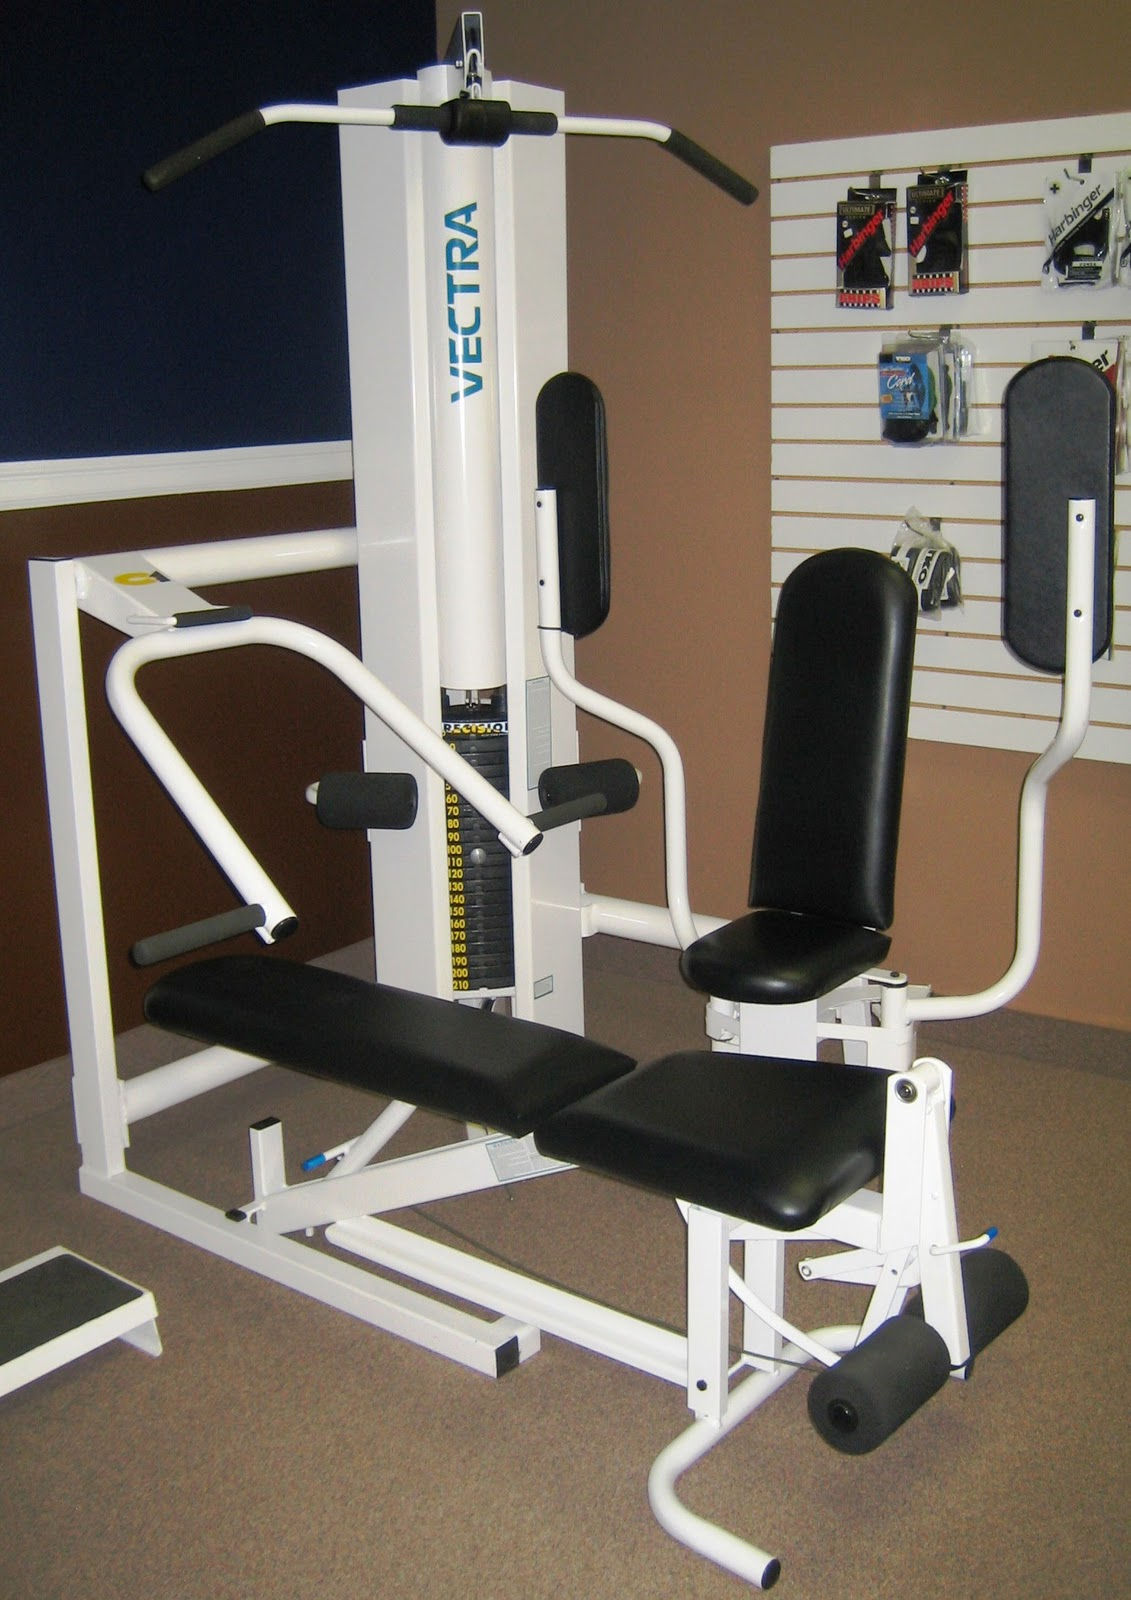 Vectra c home gym image details